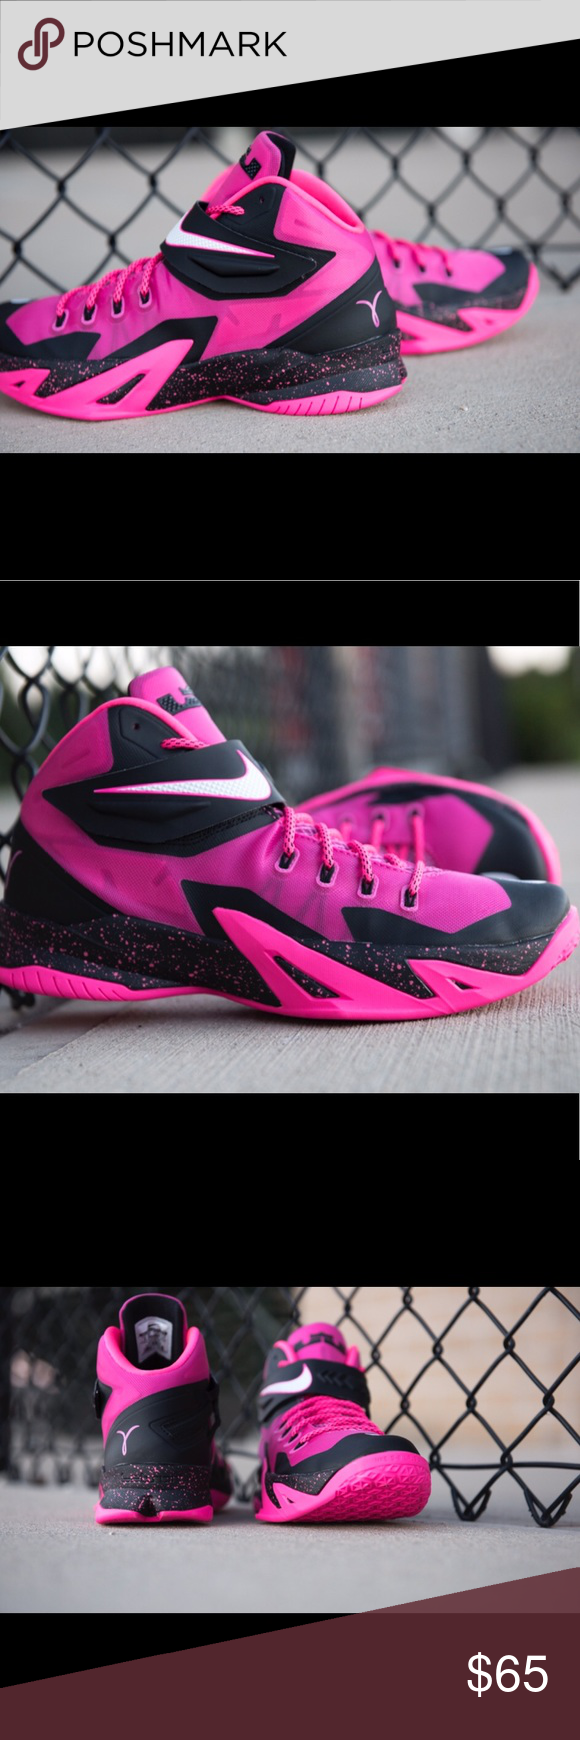 "08c2c2d7d6da 10.5 NIKE ZOOM SOLDIER 8 ""KAY YOW"" Nike Zoom LeBron Soldier 8 ""Kay Yow""  Pink Ribbon Breast Cancer Awareness Size 10.5 Nike Shoes Sneakers"